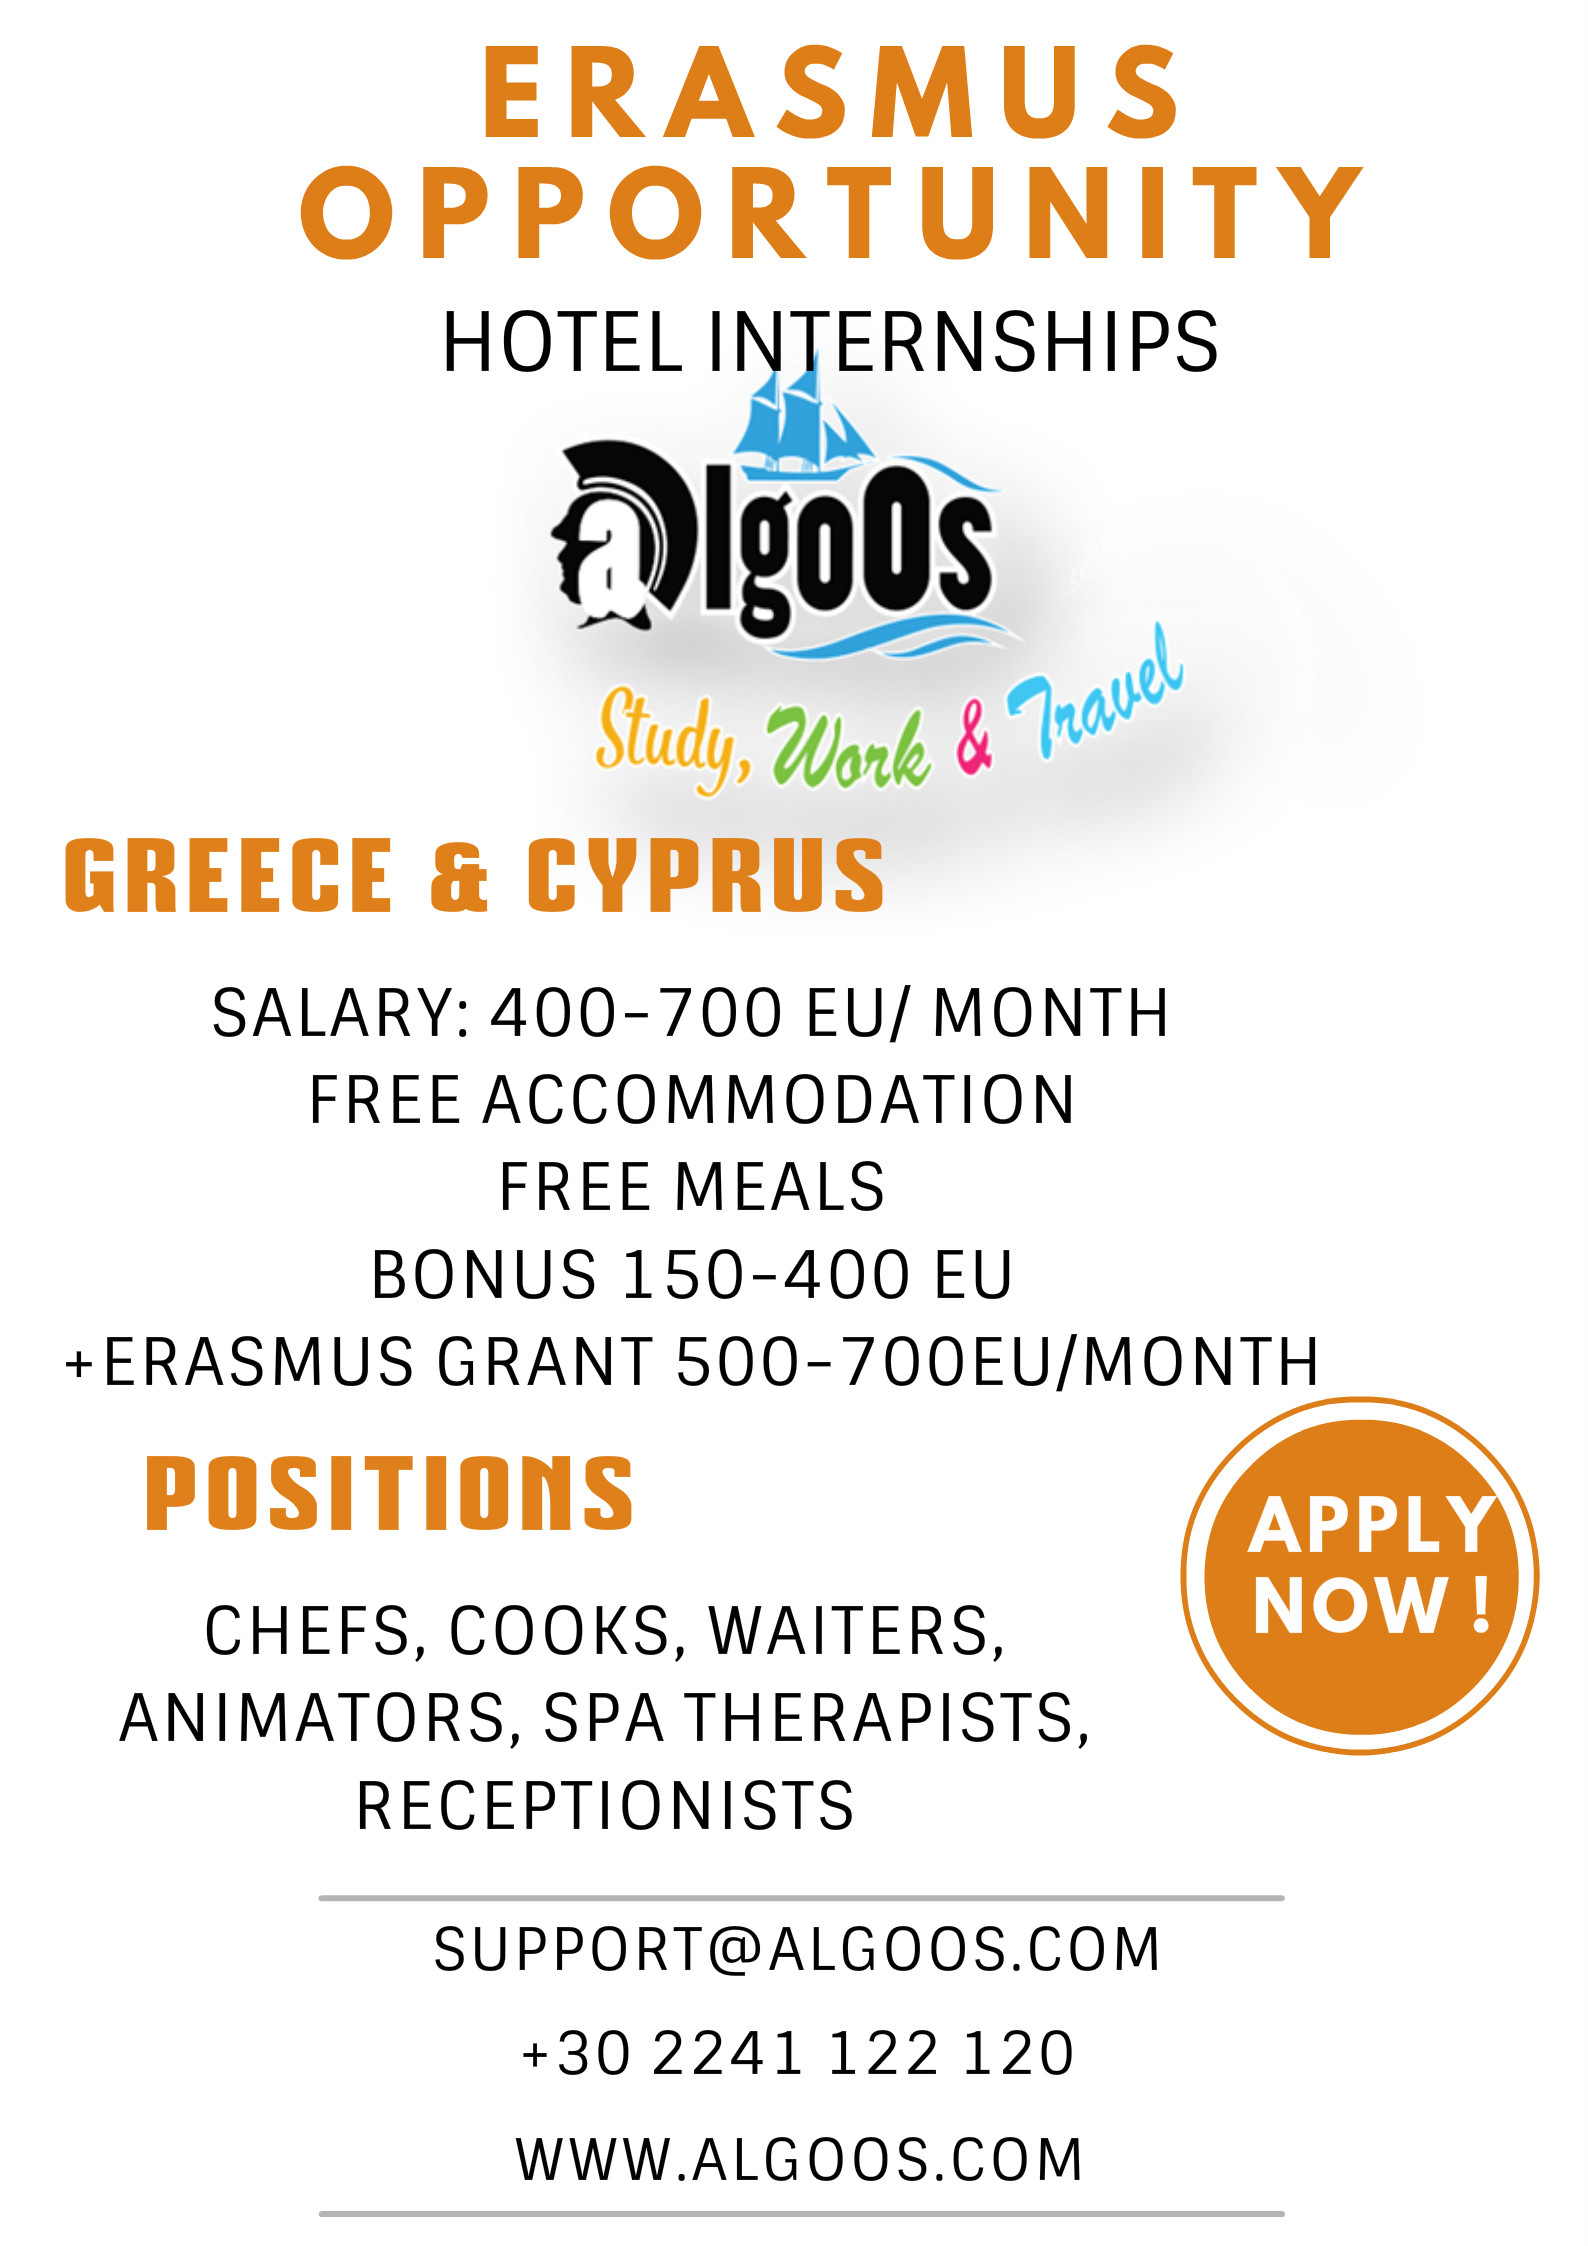 ERASMUS OPPORTUNITY FOR HOTELS POSTER ALGOOS